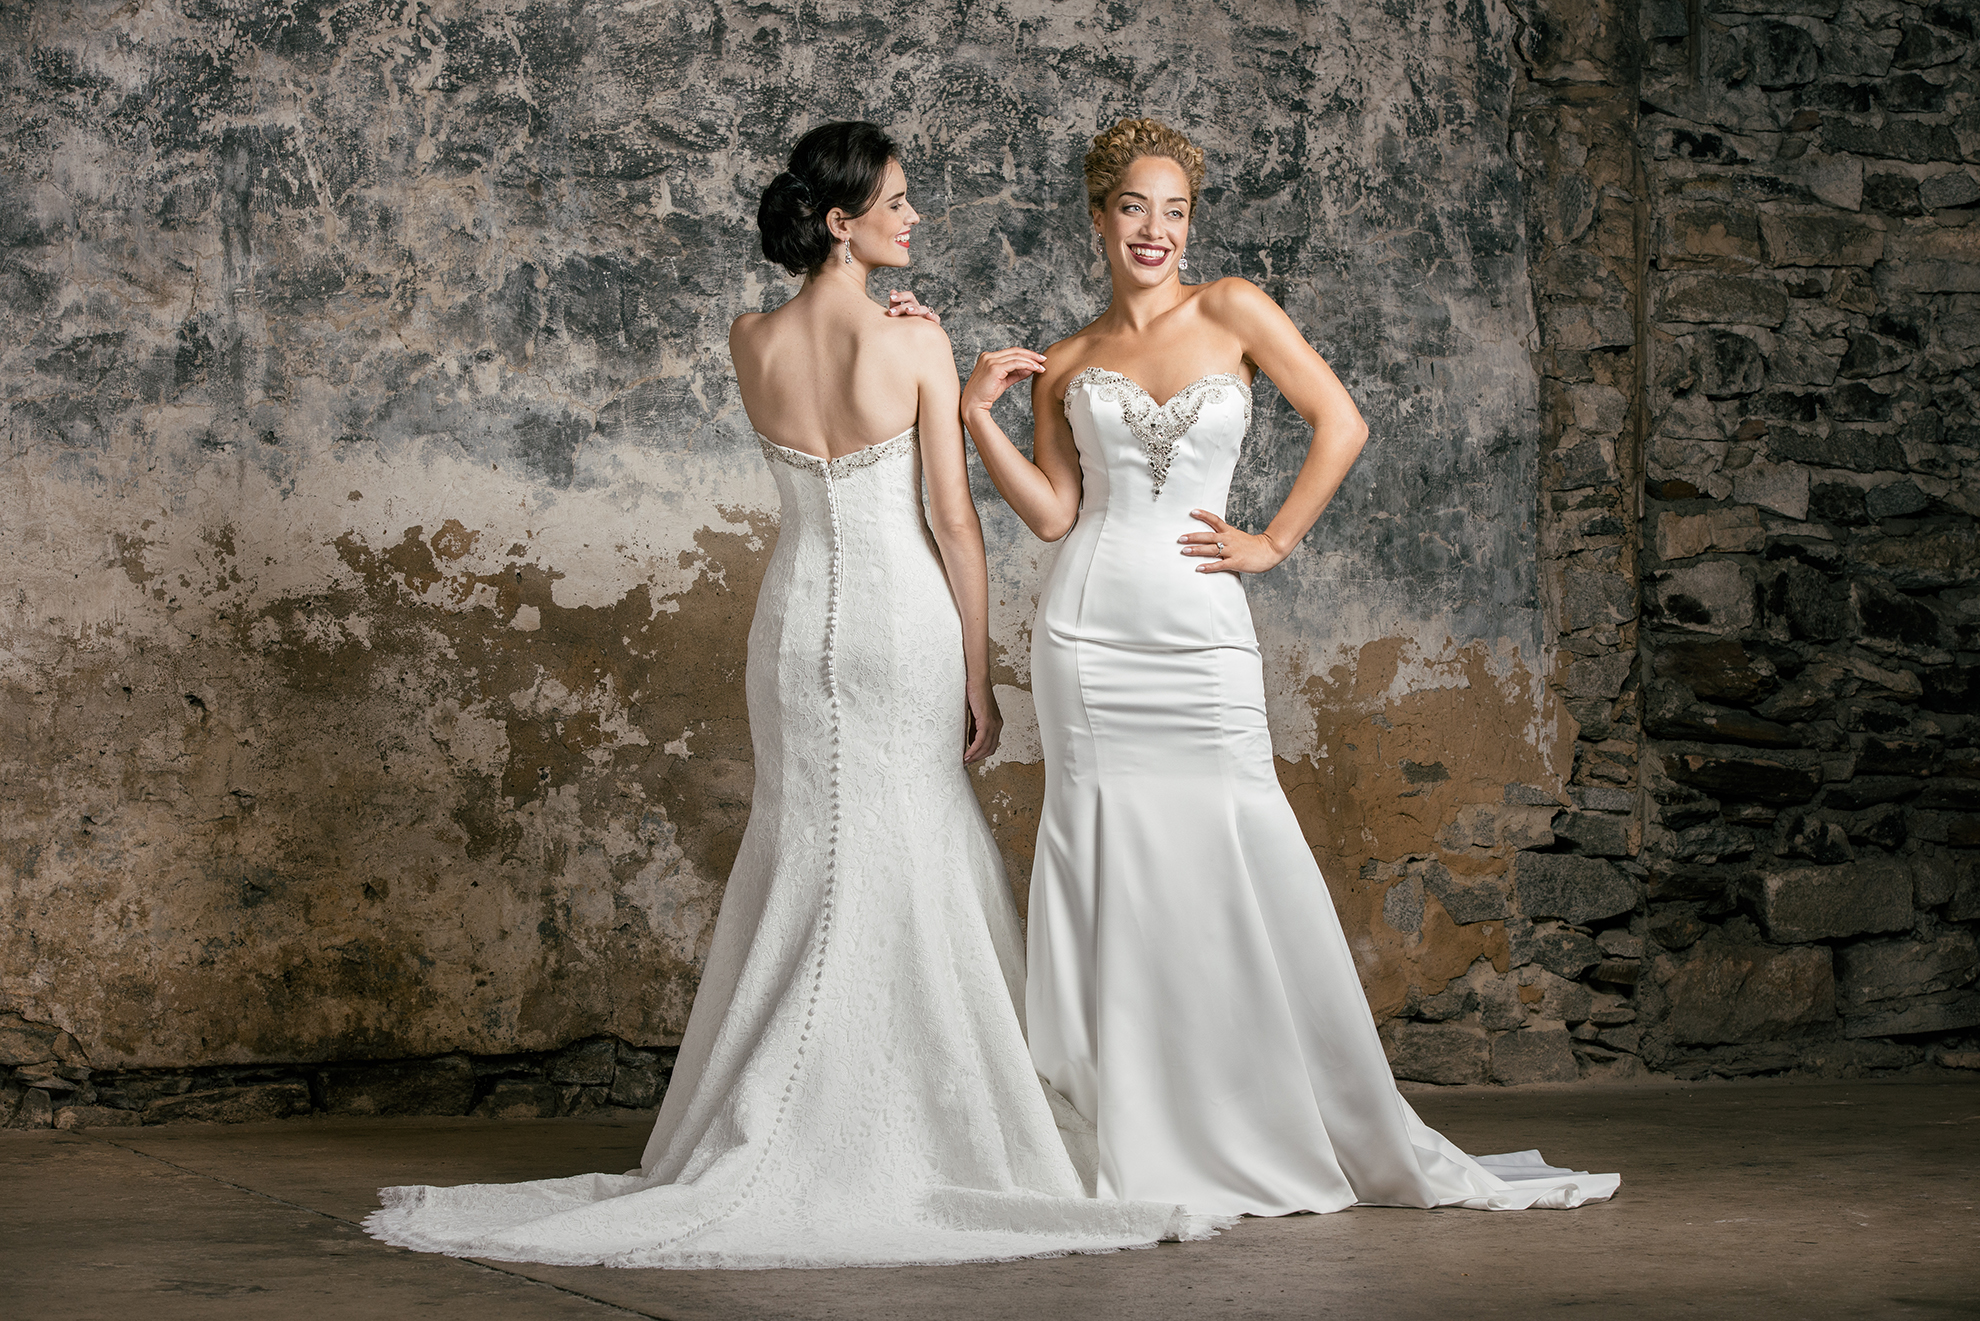 Off the rack wedding dresses atlanta cosmecol for Where to buy off the rack wedding dresses